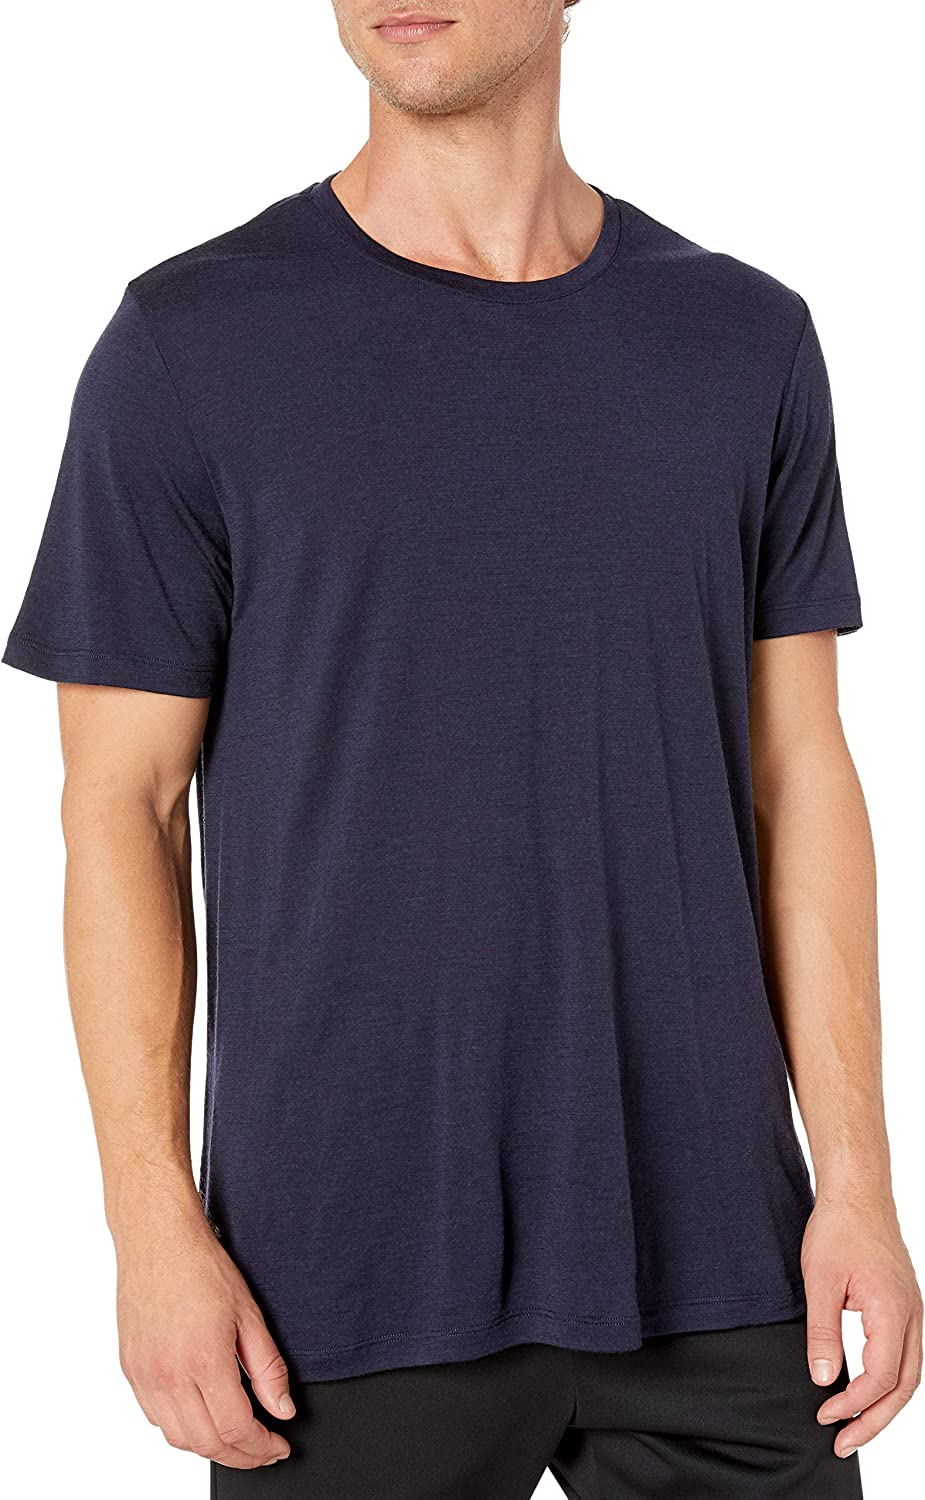 Icebreaker Merino Mens Tech Lite Merino Wool Short Sleeve T-Shirt